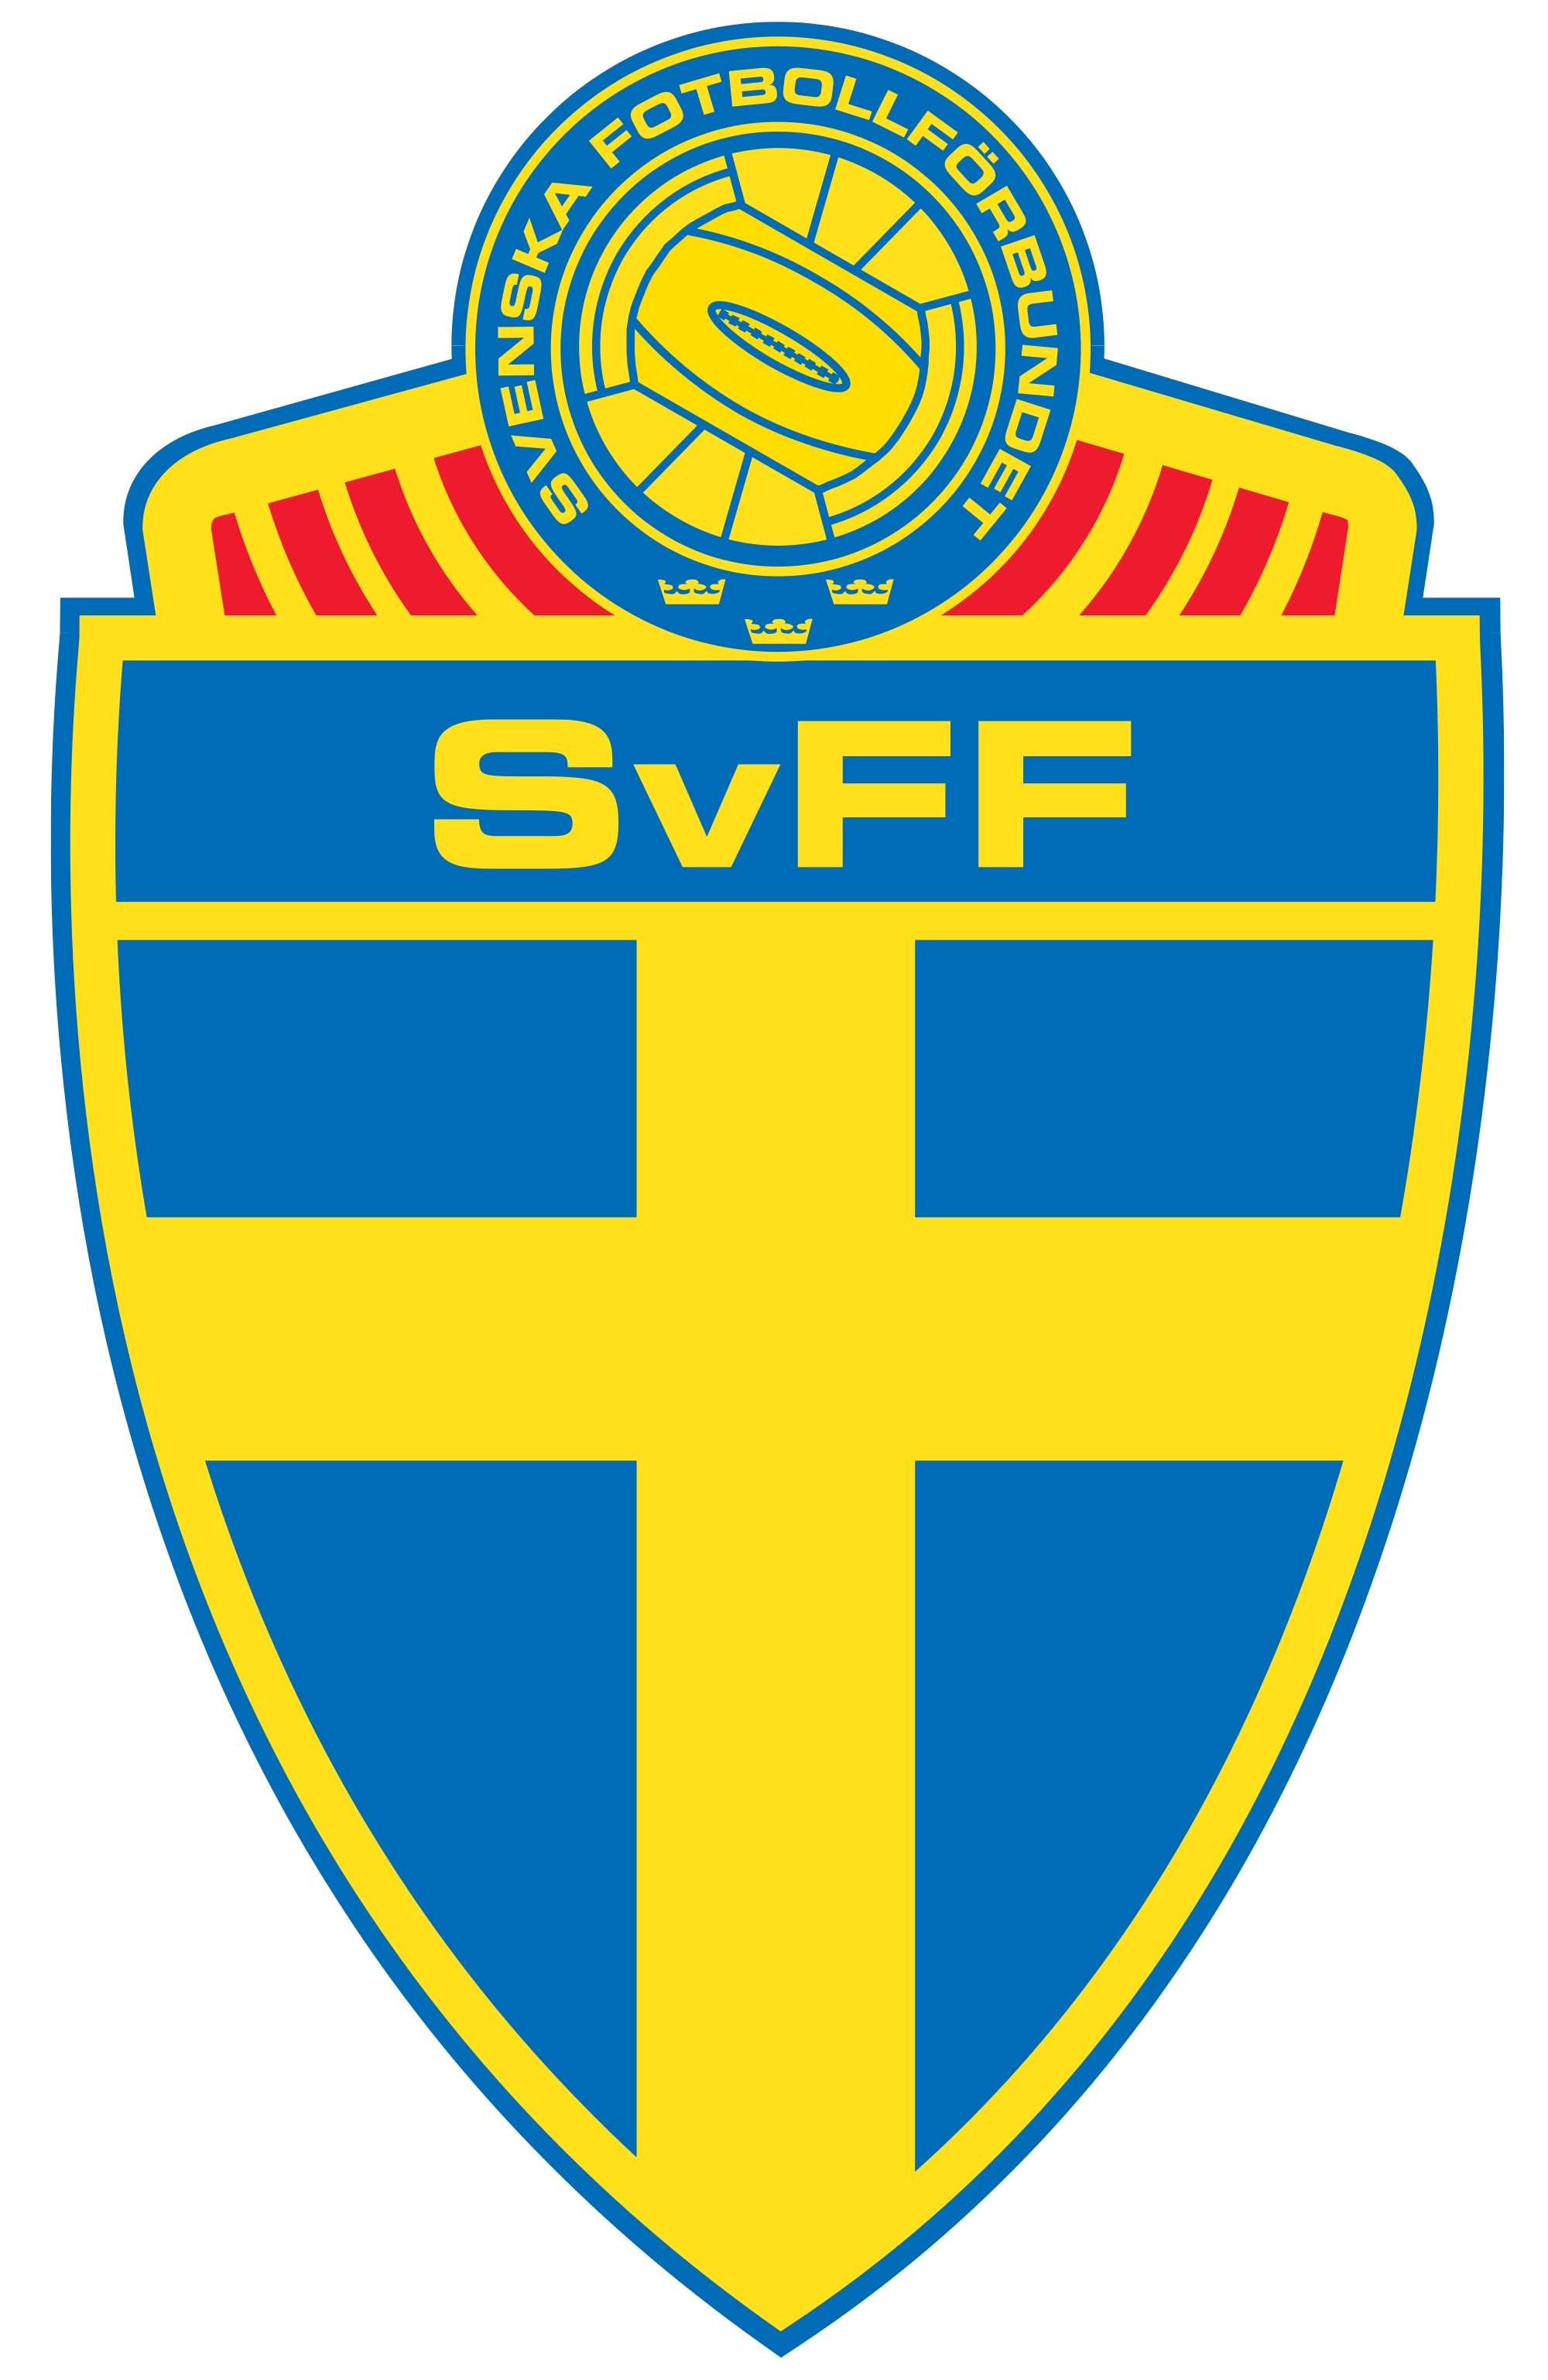 Image result for sweden football logo